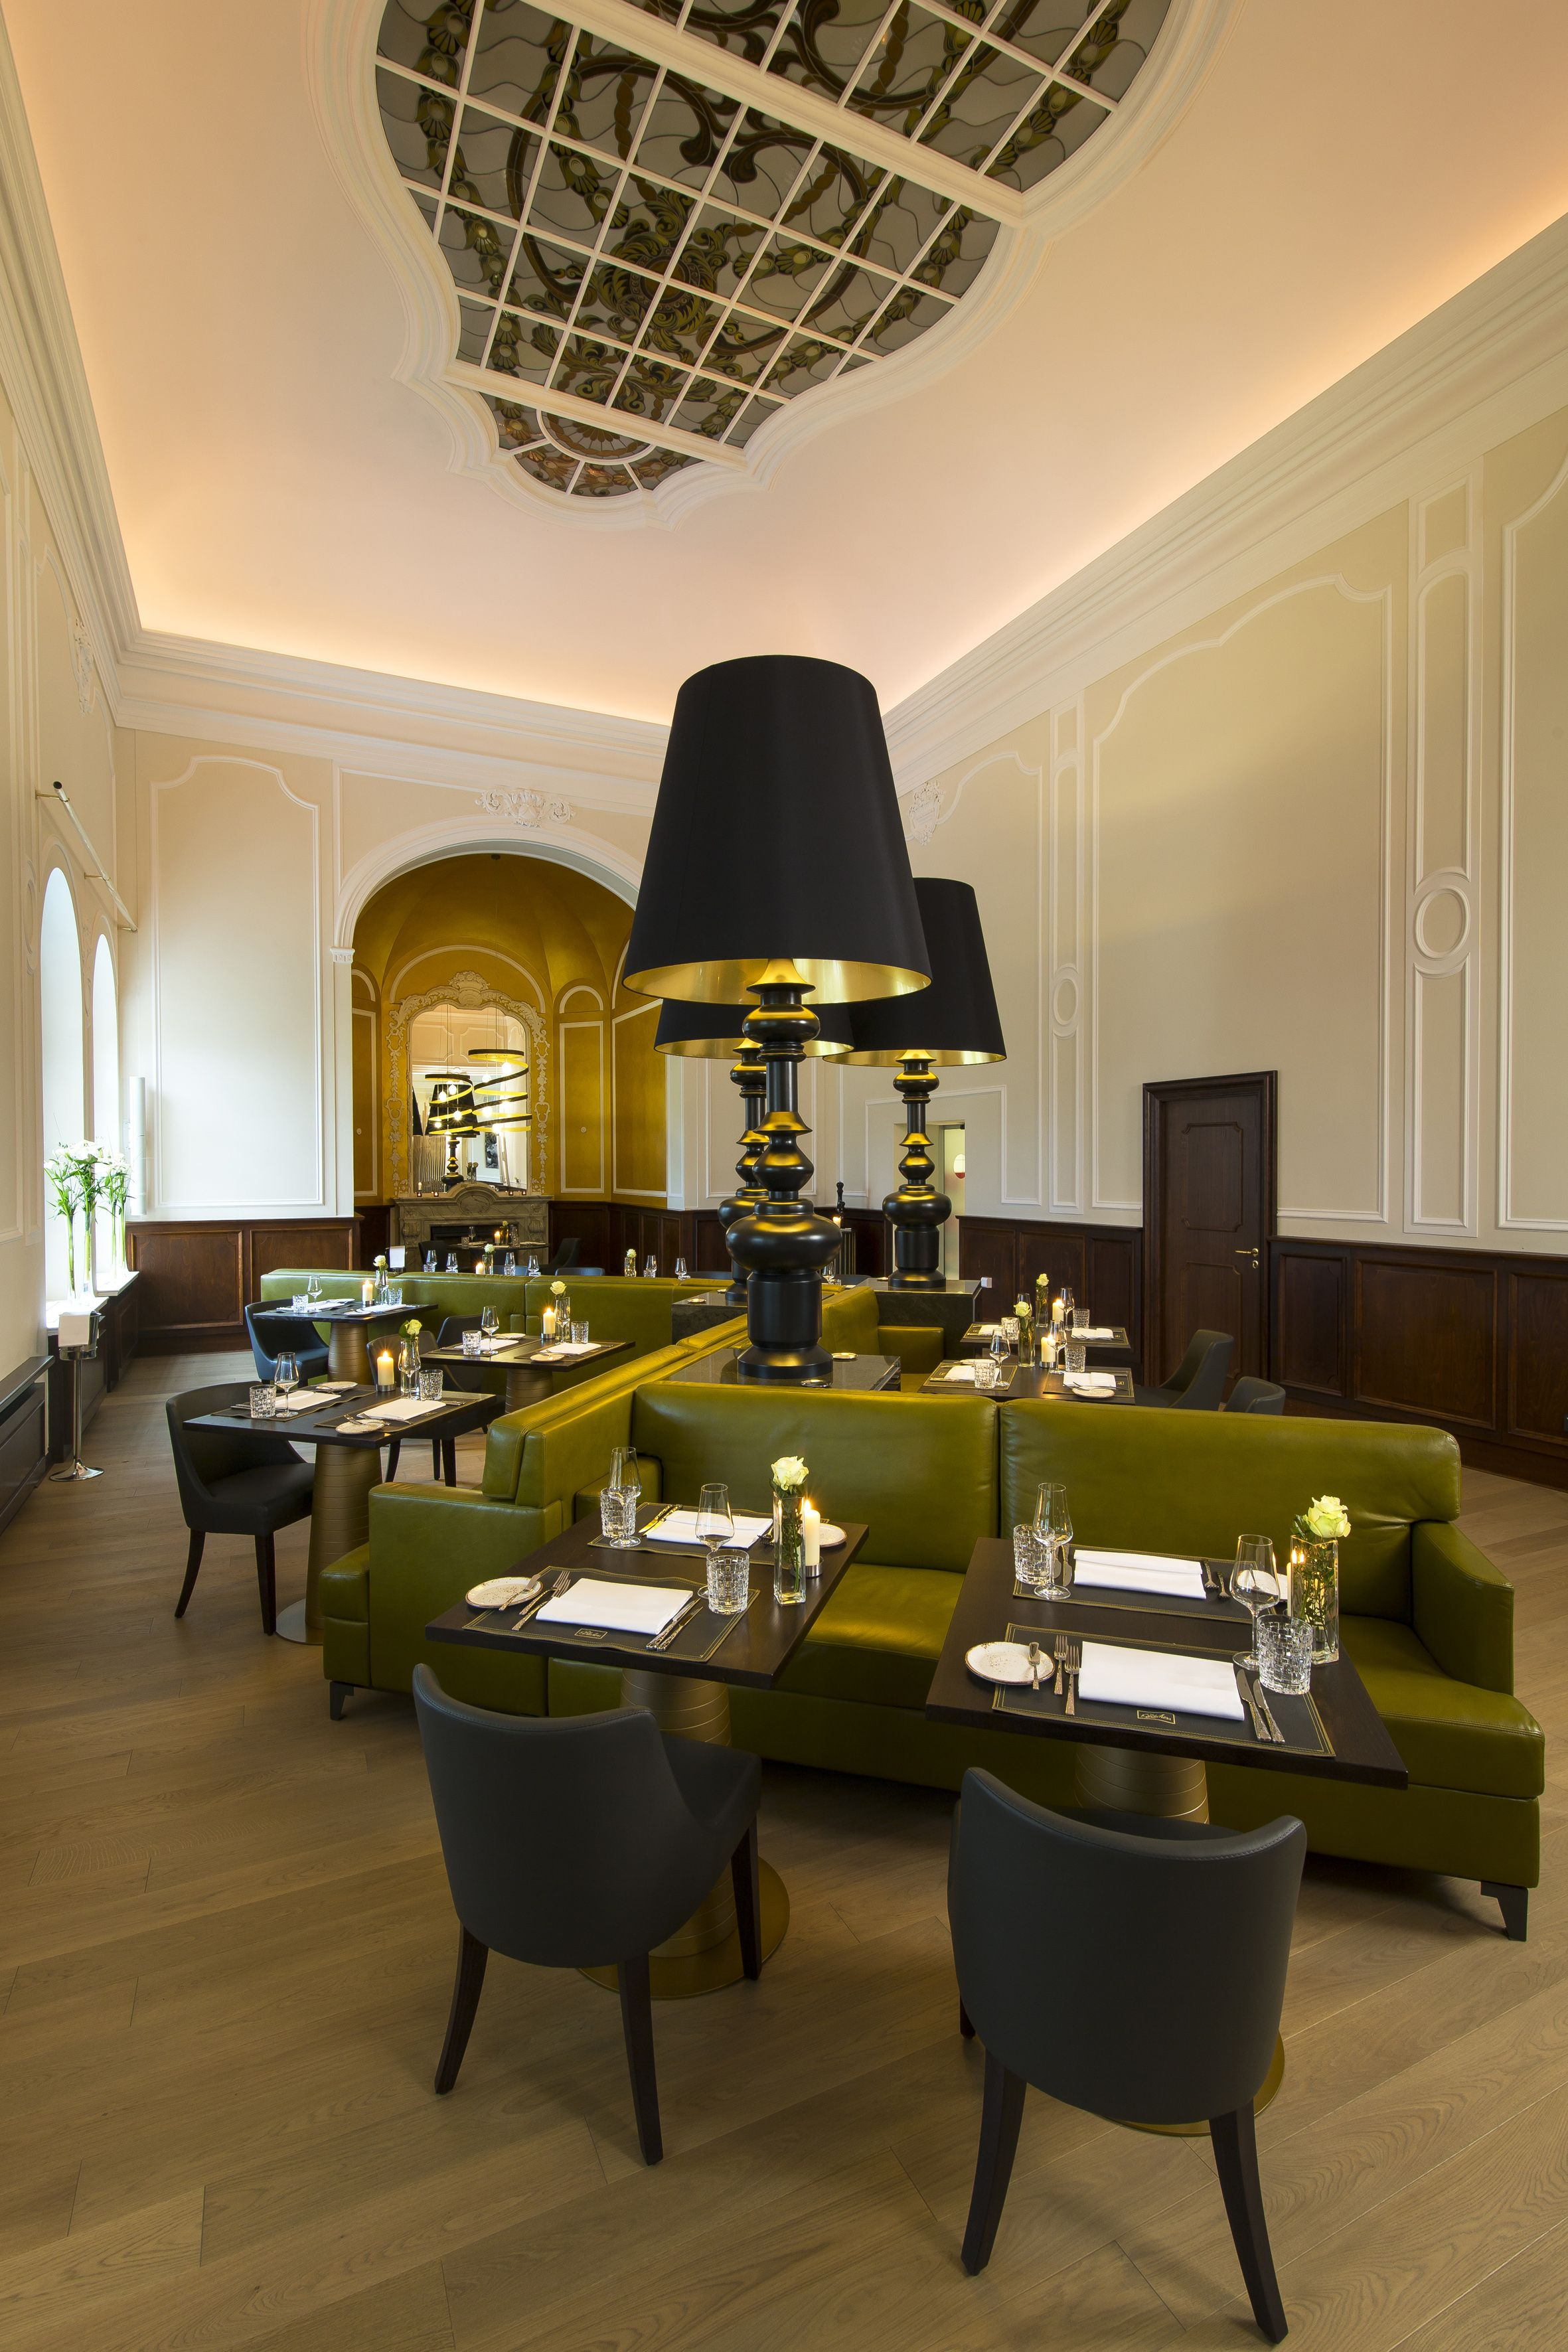 Buffet Hotel Mercure Wittenberg Berlin Design By Kitzig Interior